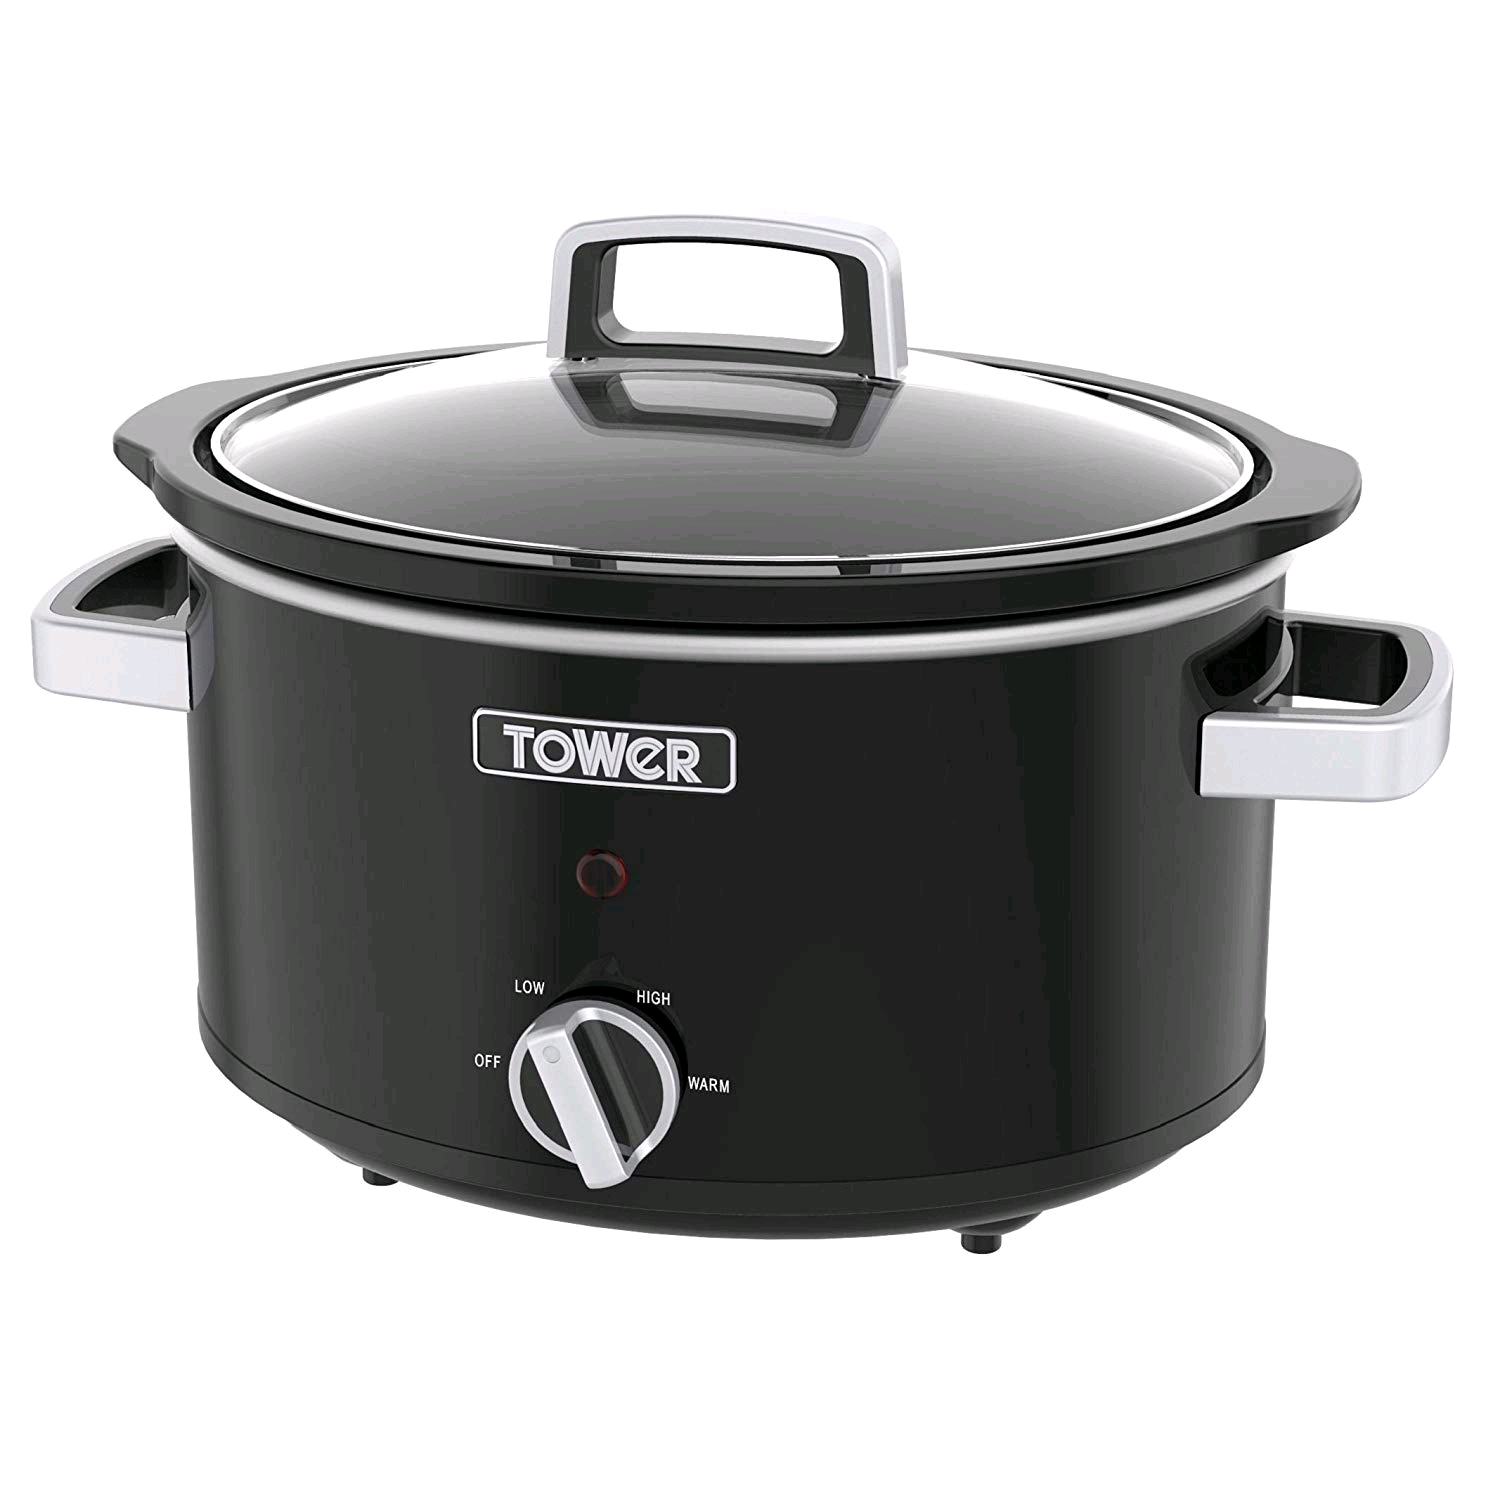 Tower Infinity  Slow Cooker 3.5L 210w Black